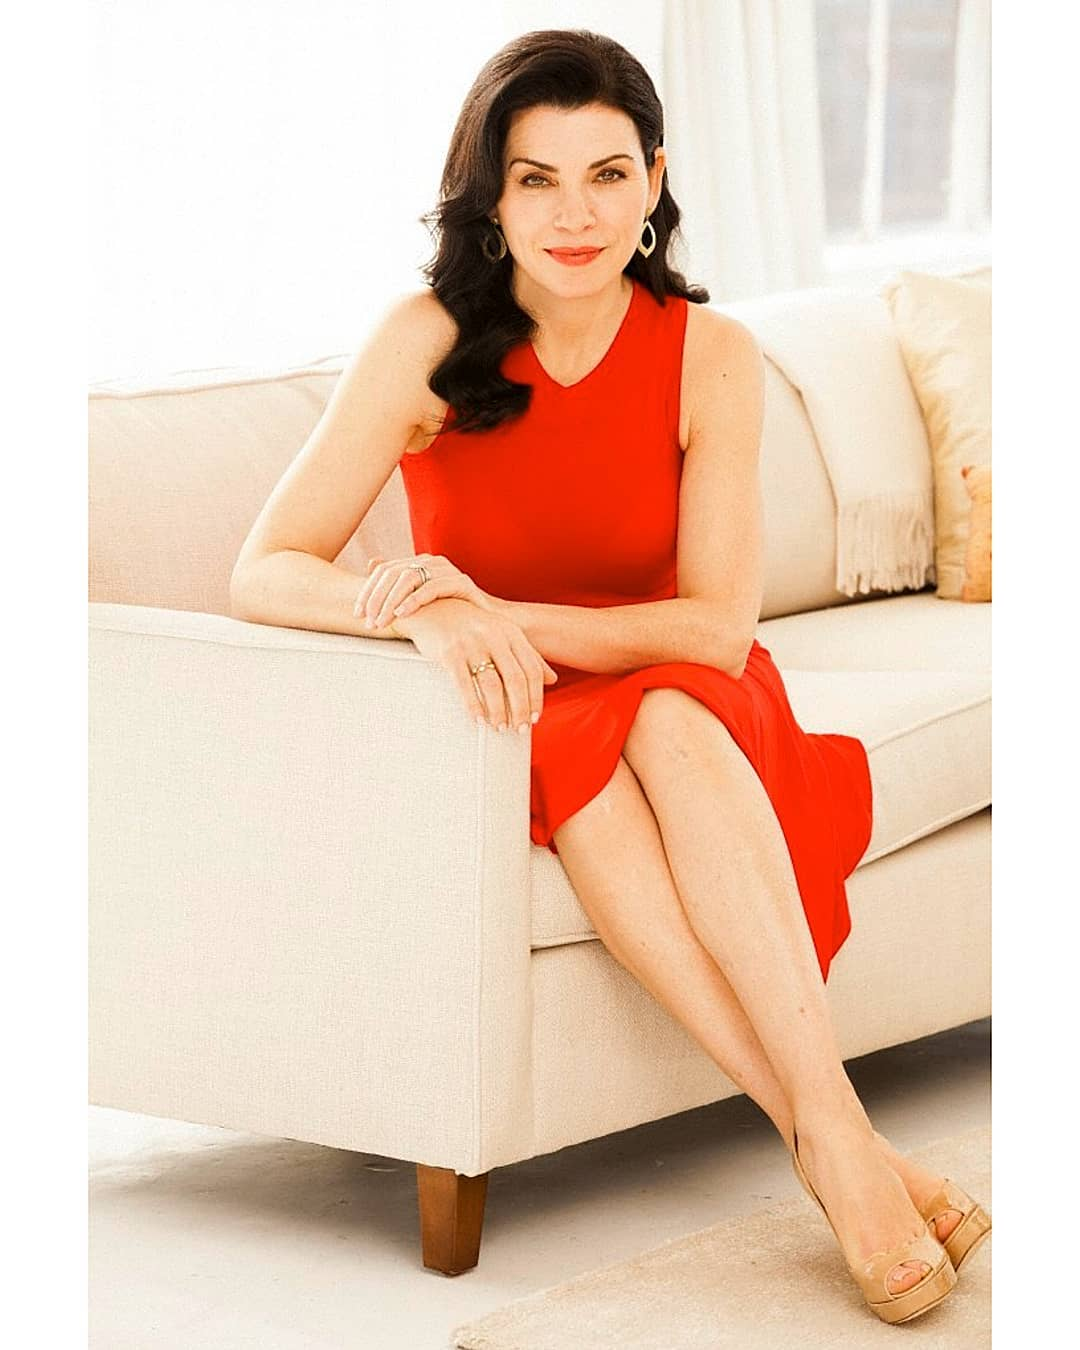 Julianna Margulies Hot Legs